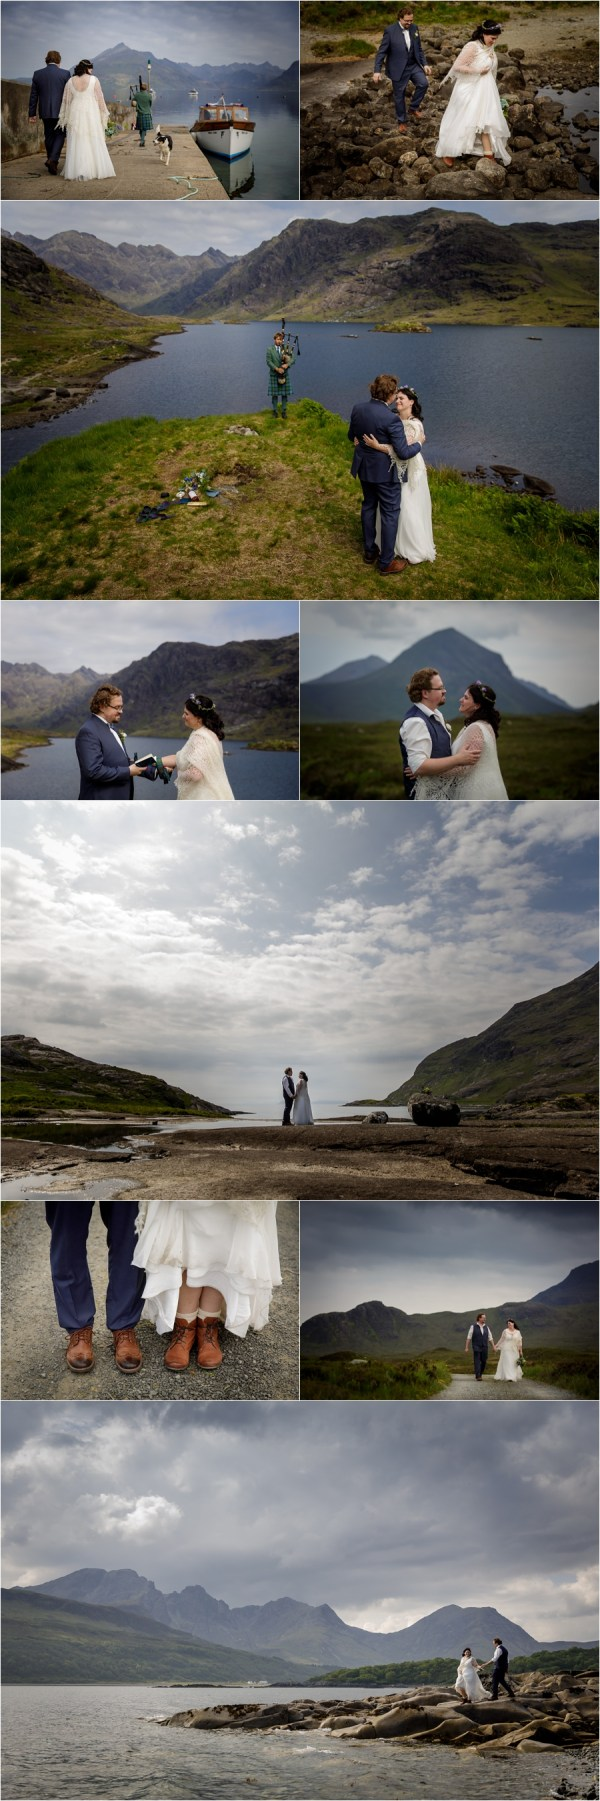 Collage of images for a Loch Coruisk elopement on the Isle of Skye by Lynne Kennedy Photography